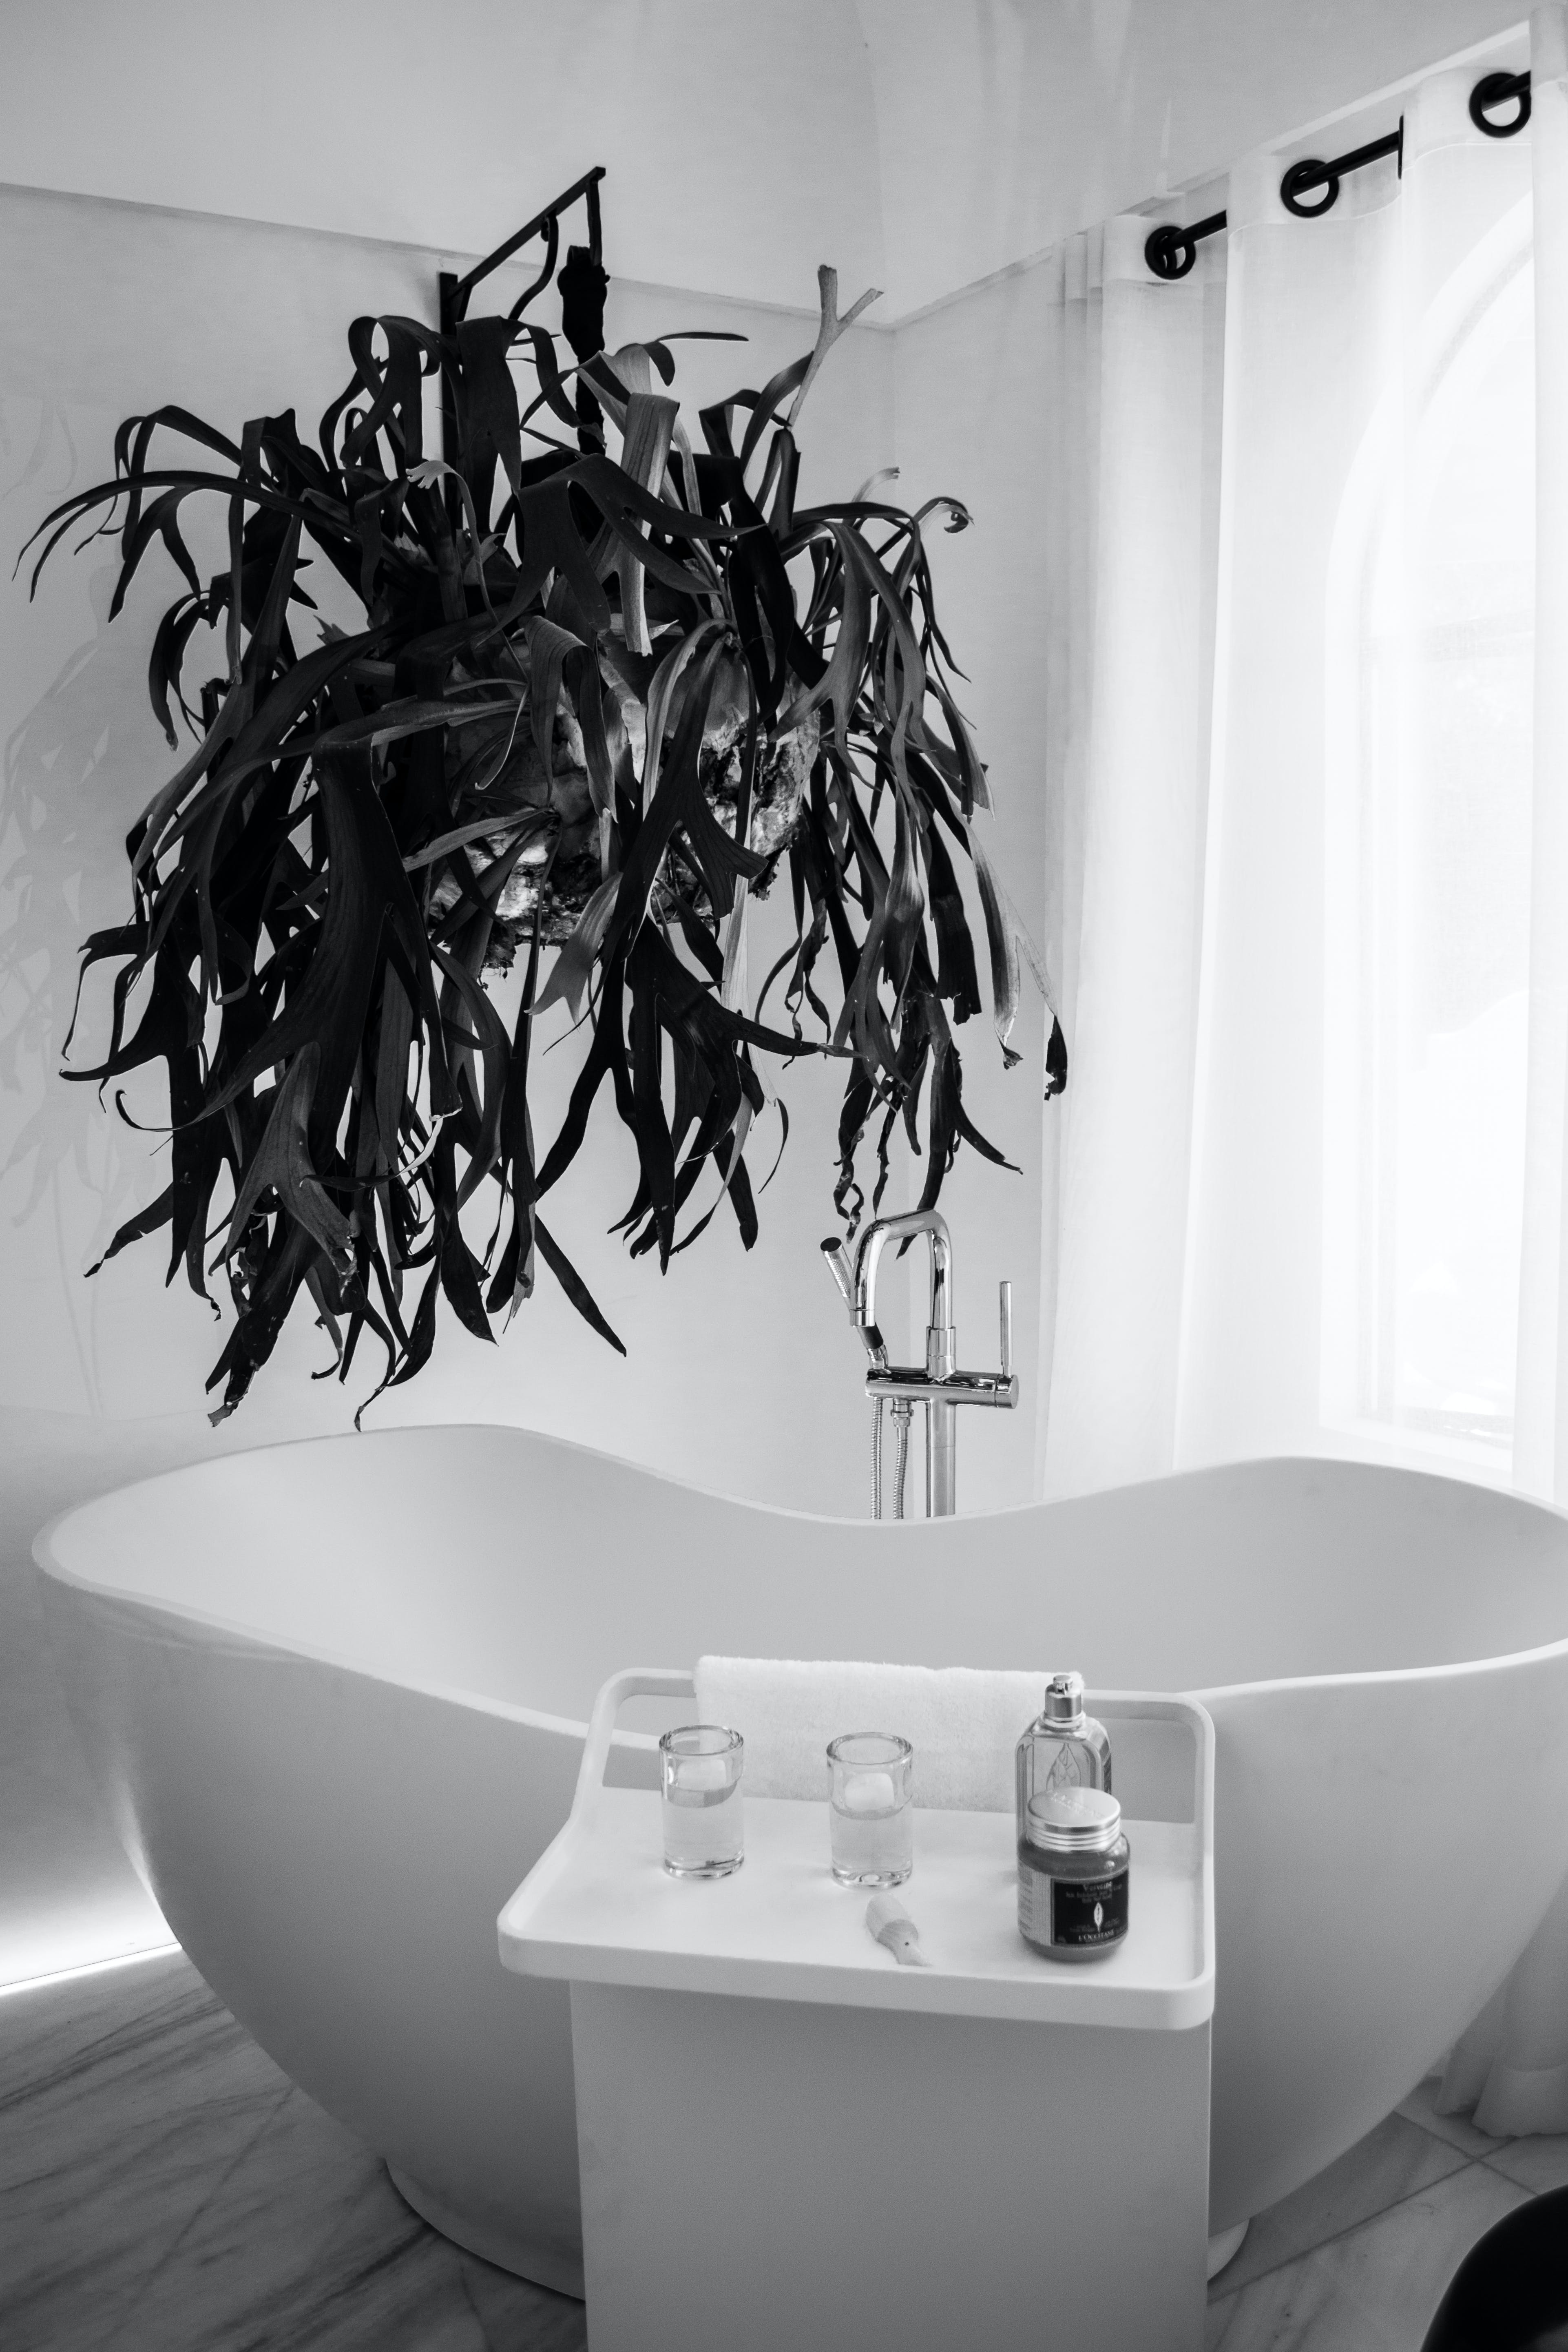 Grayscale Photography of Bathtub Near Window